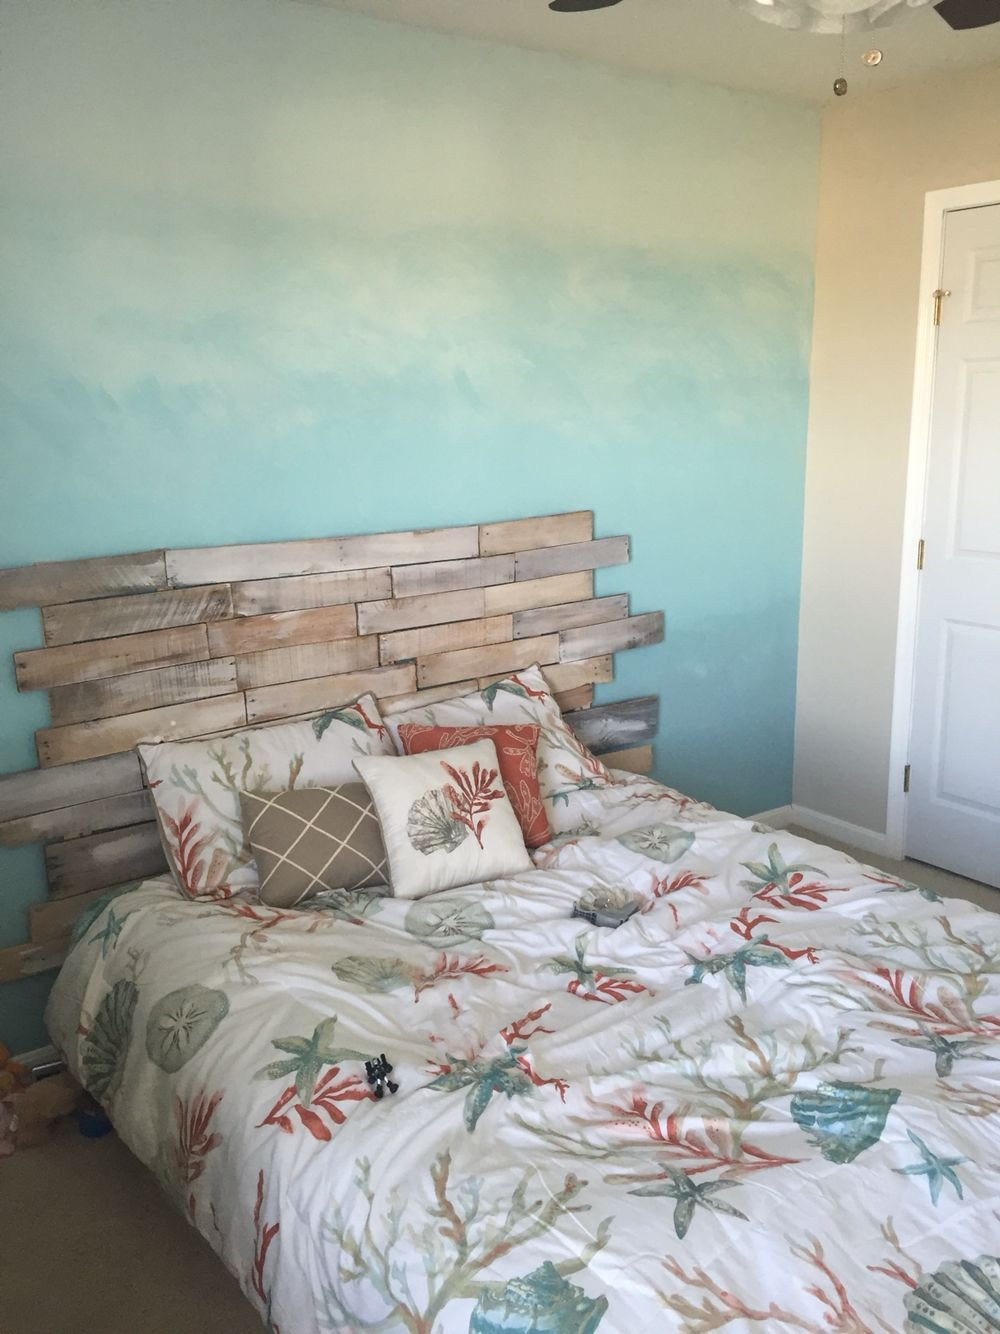 Beach themed Master Bedroom Best Of Ombré Ocean Wall Pallet Headboard for A Beach themed Room